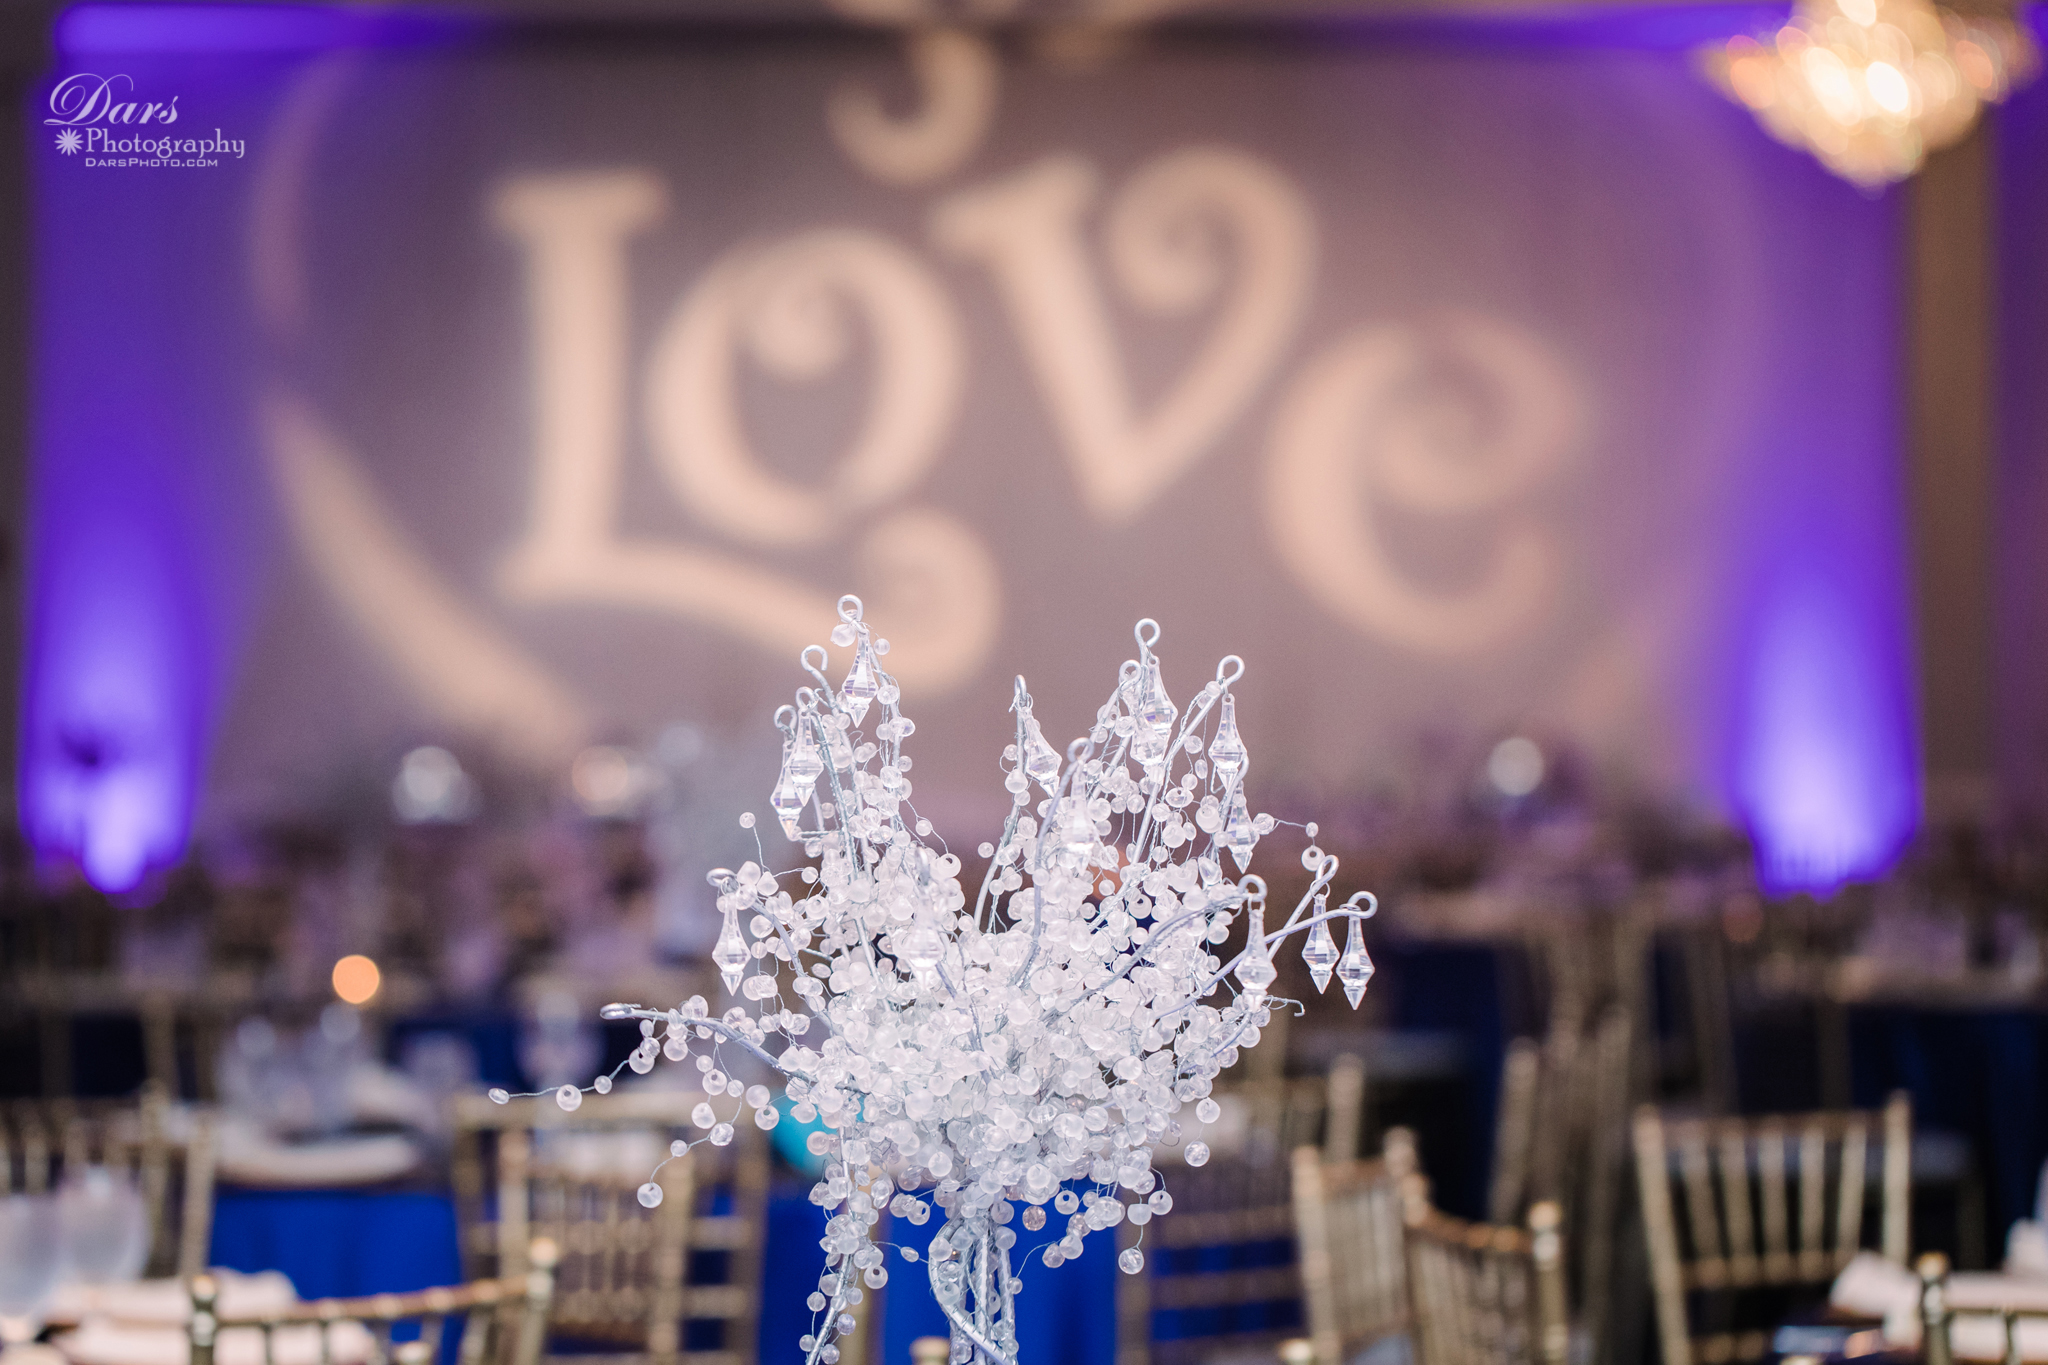 Wedding Decor by DARS Photography